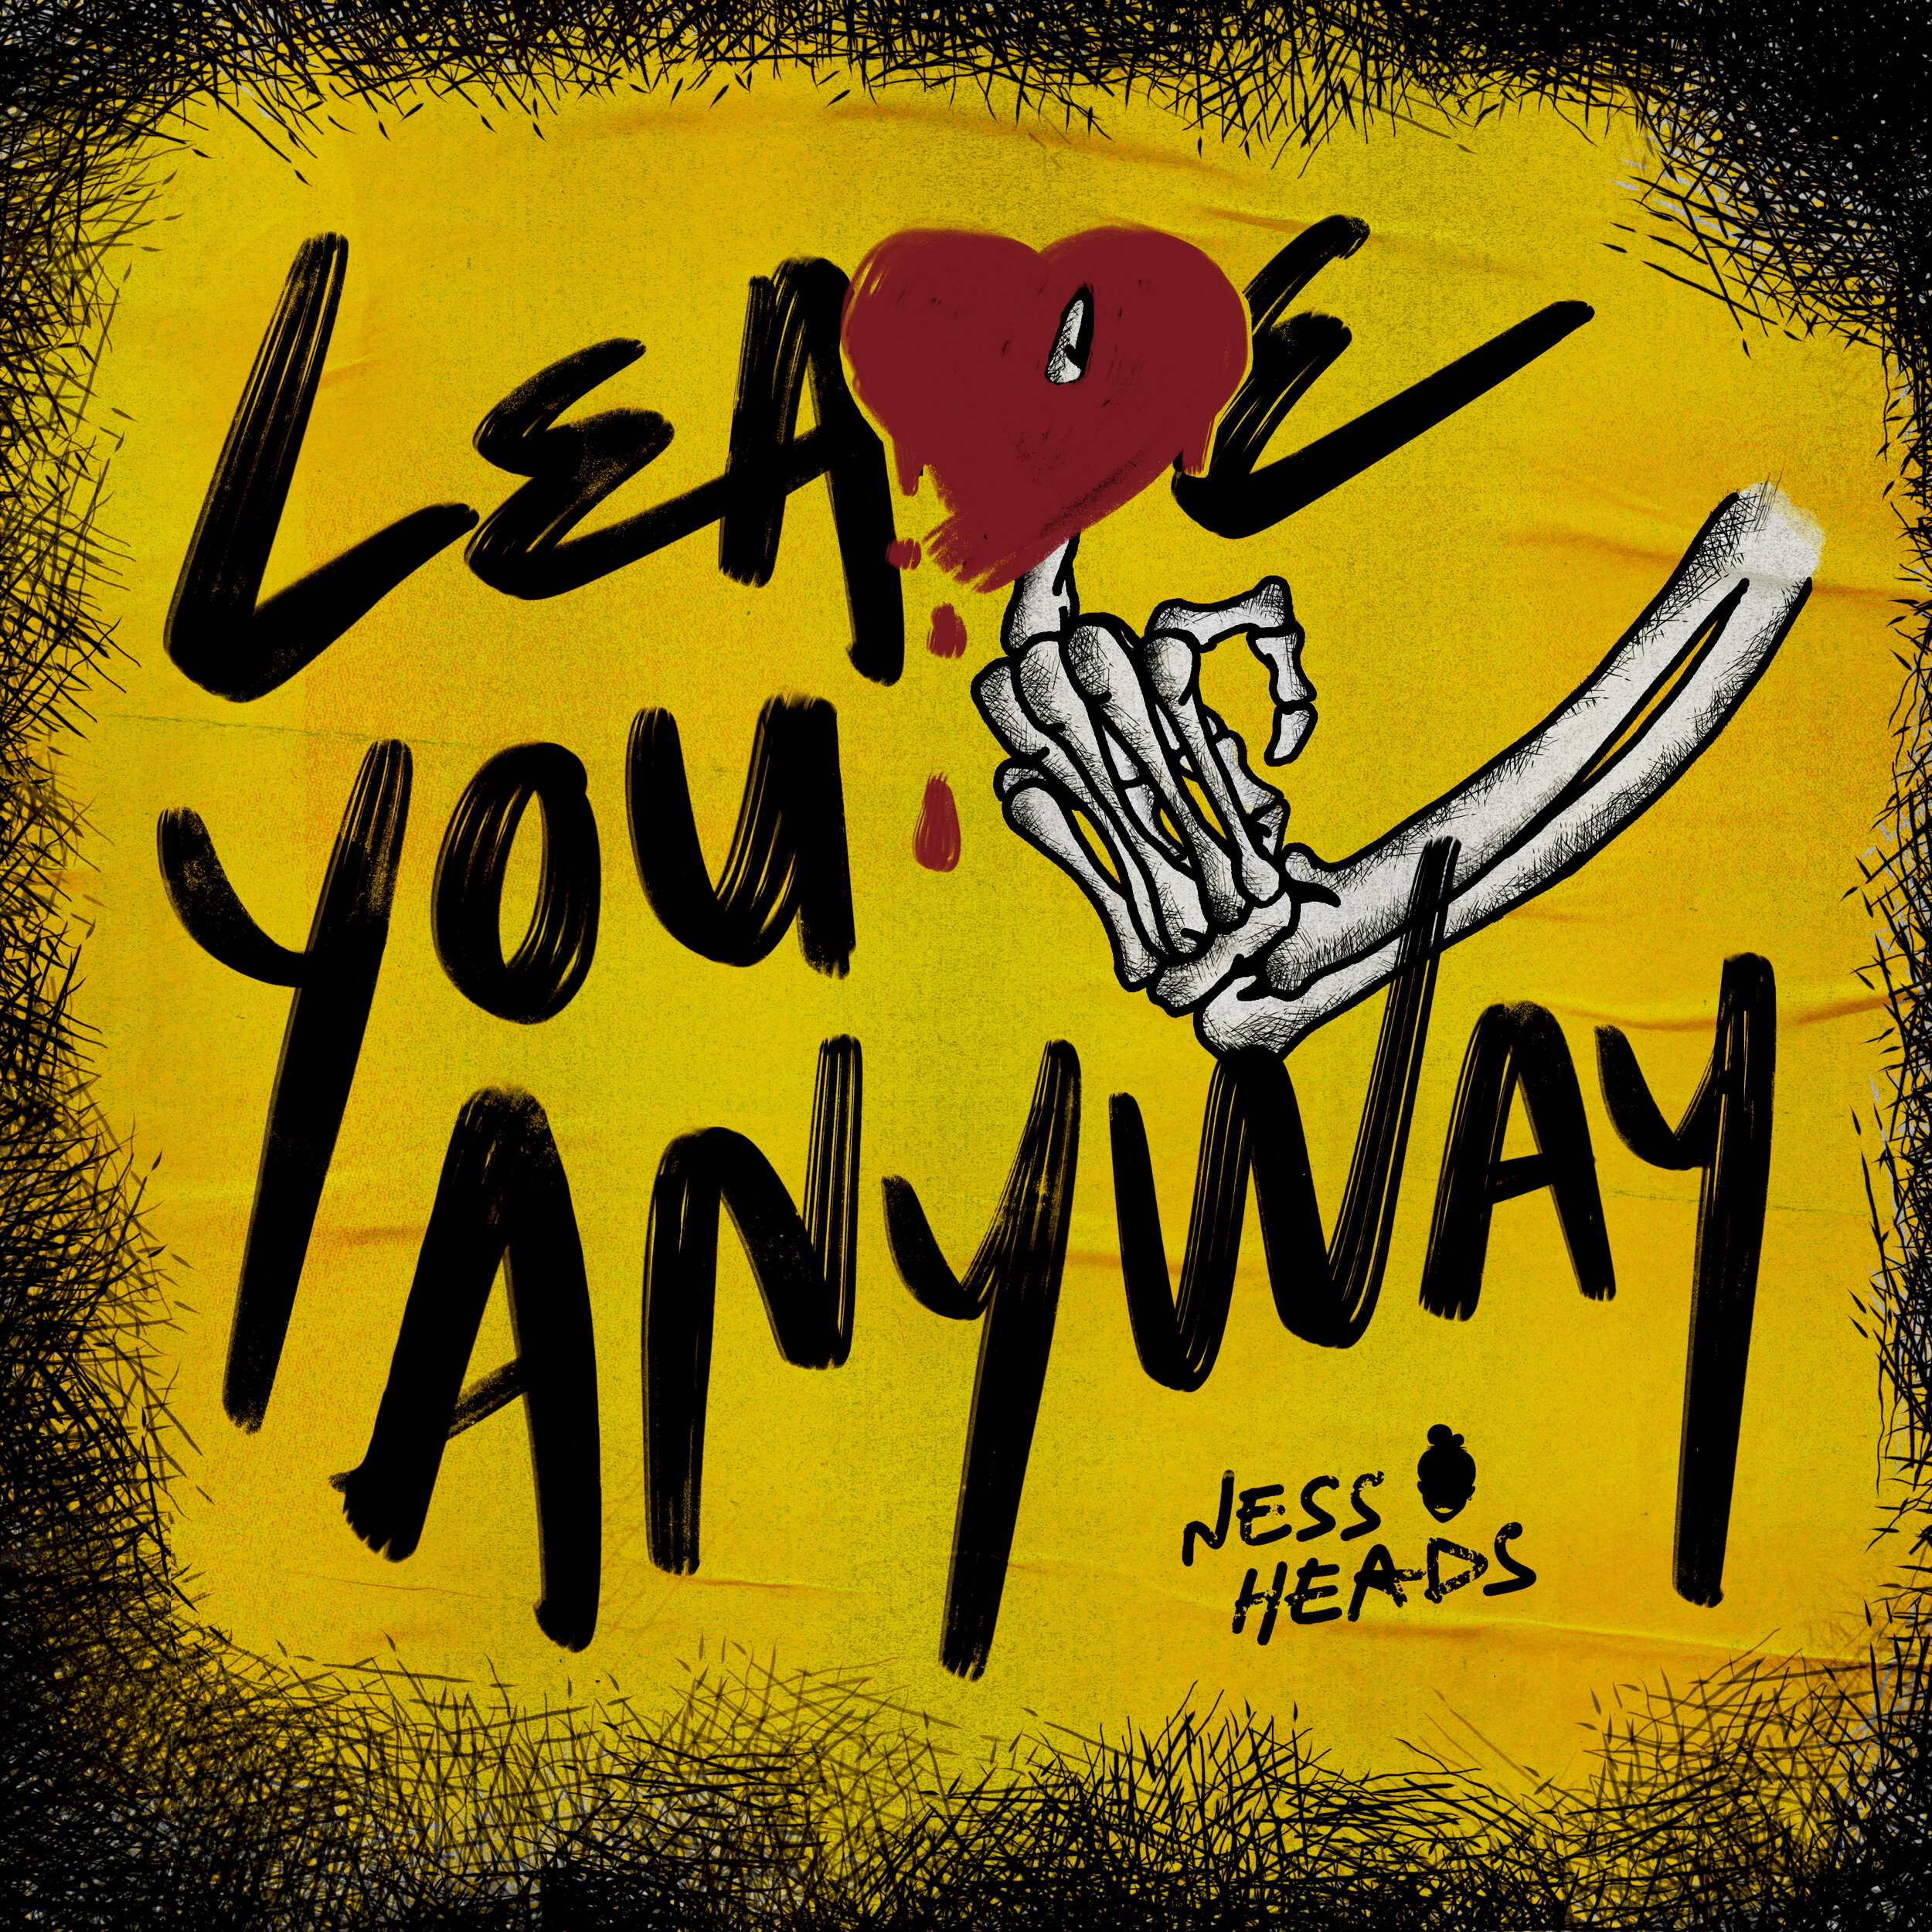 NessHeads_LeaveYouAnyway_CoverArt.jpg